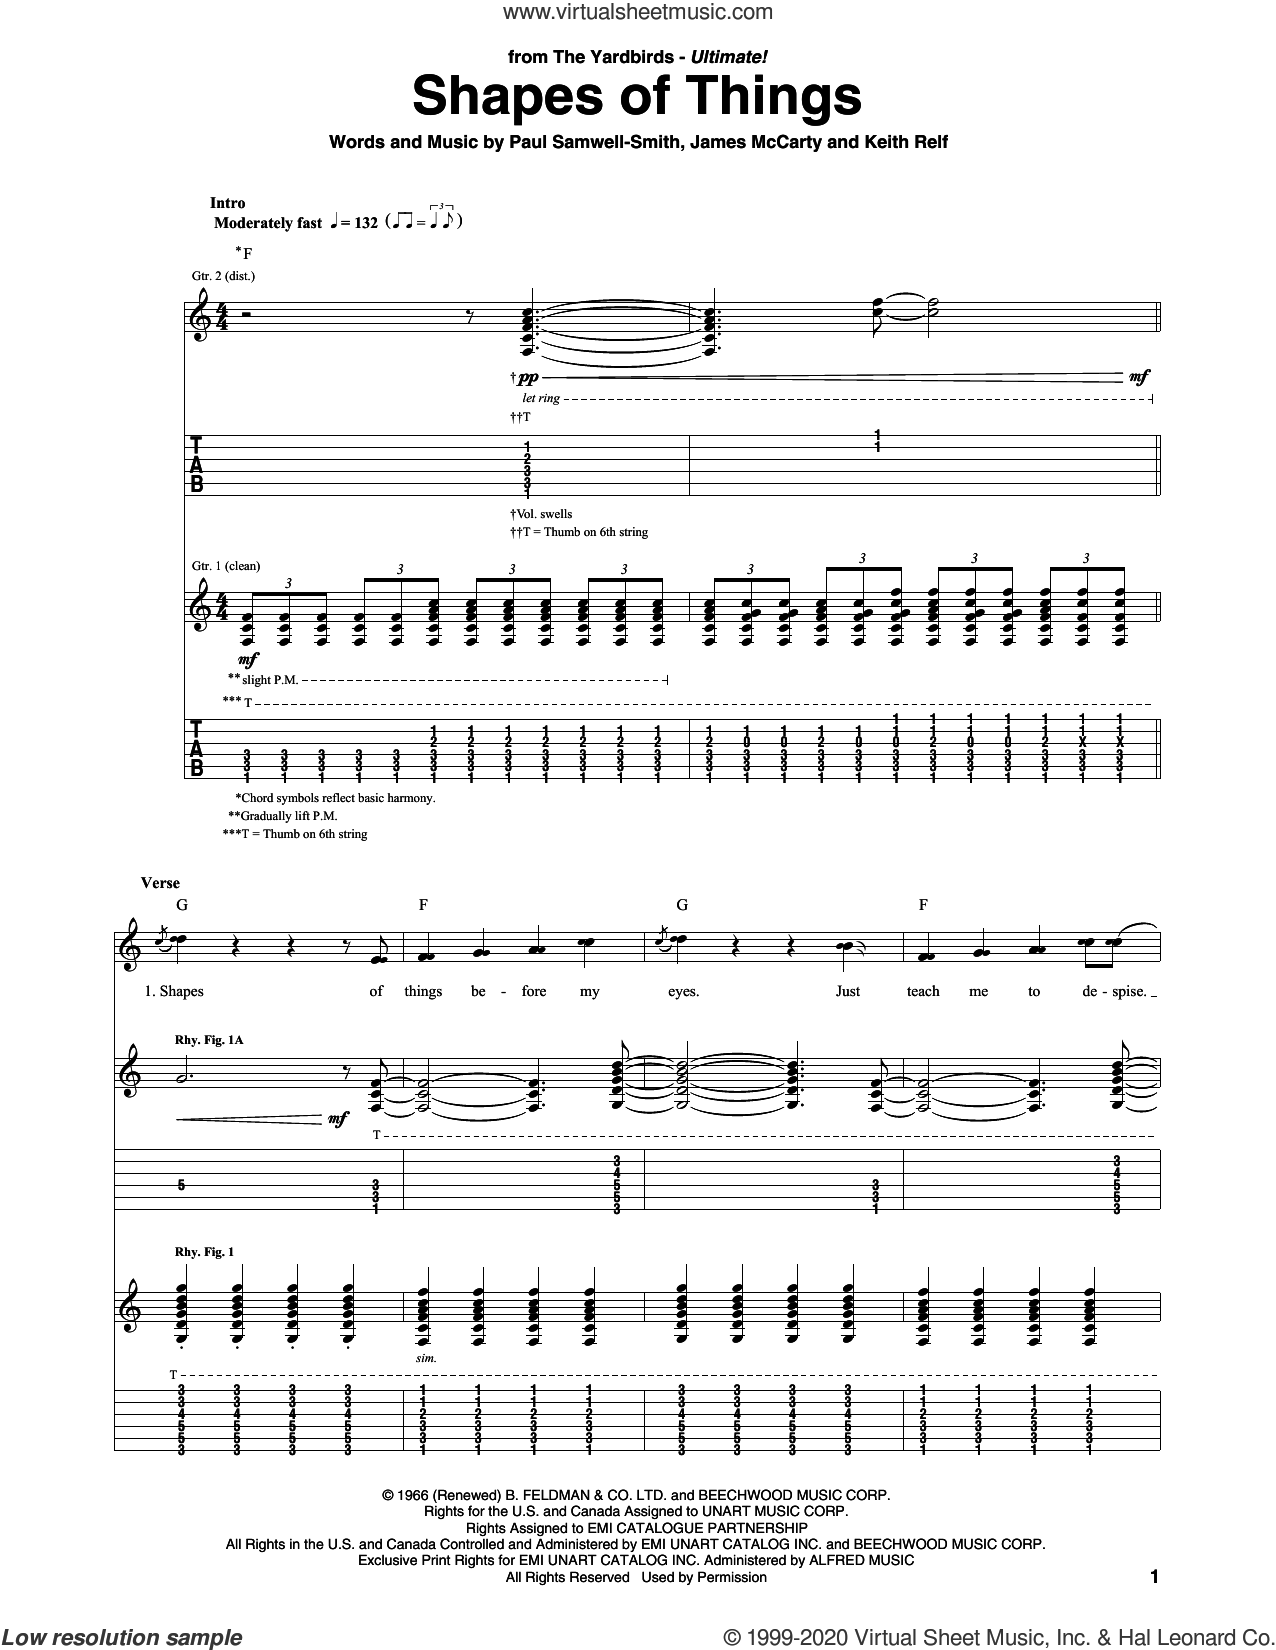 Shapes Of Things sheet music for guitar (tablature) by The Yardbirds, James McCarty, Keith Relf and Paul Samwell-Smith, intermediate skill level